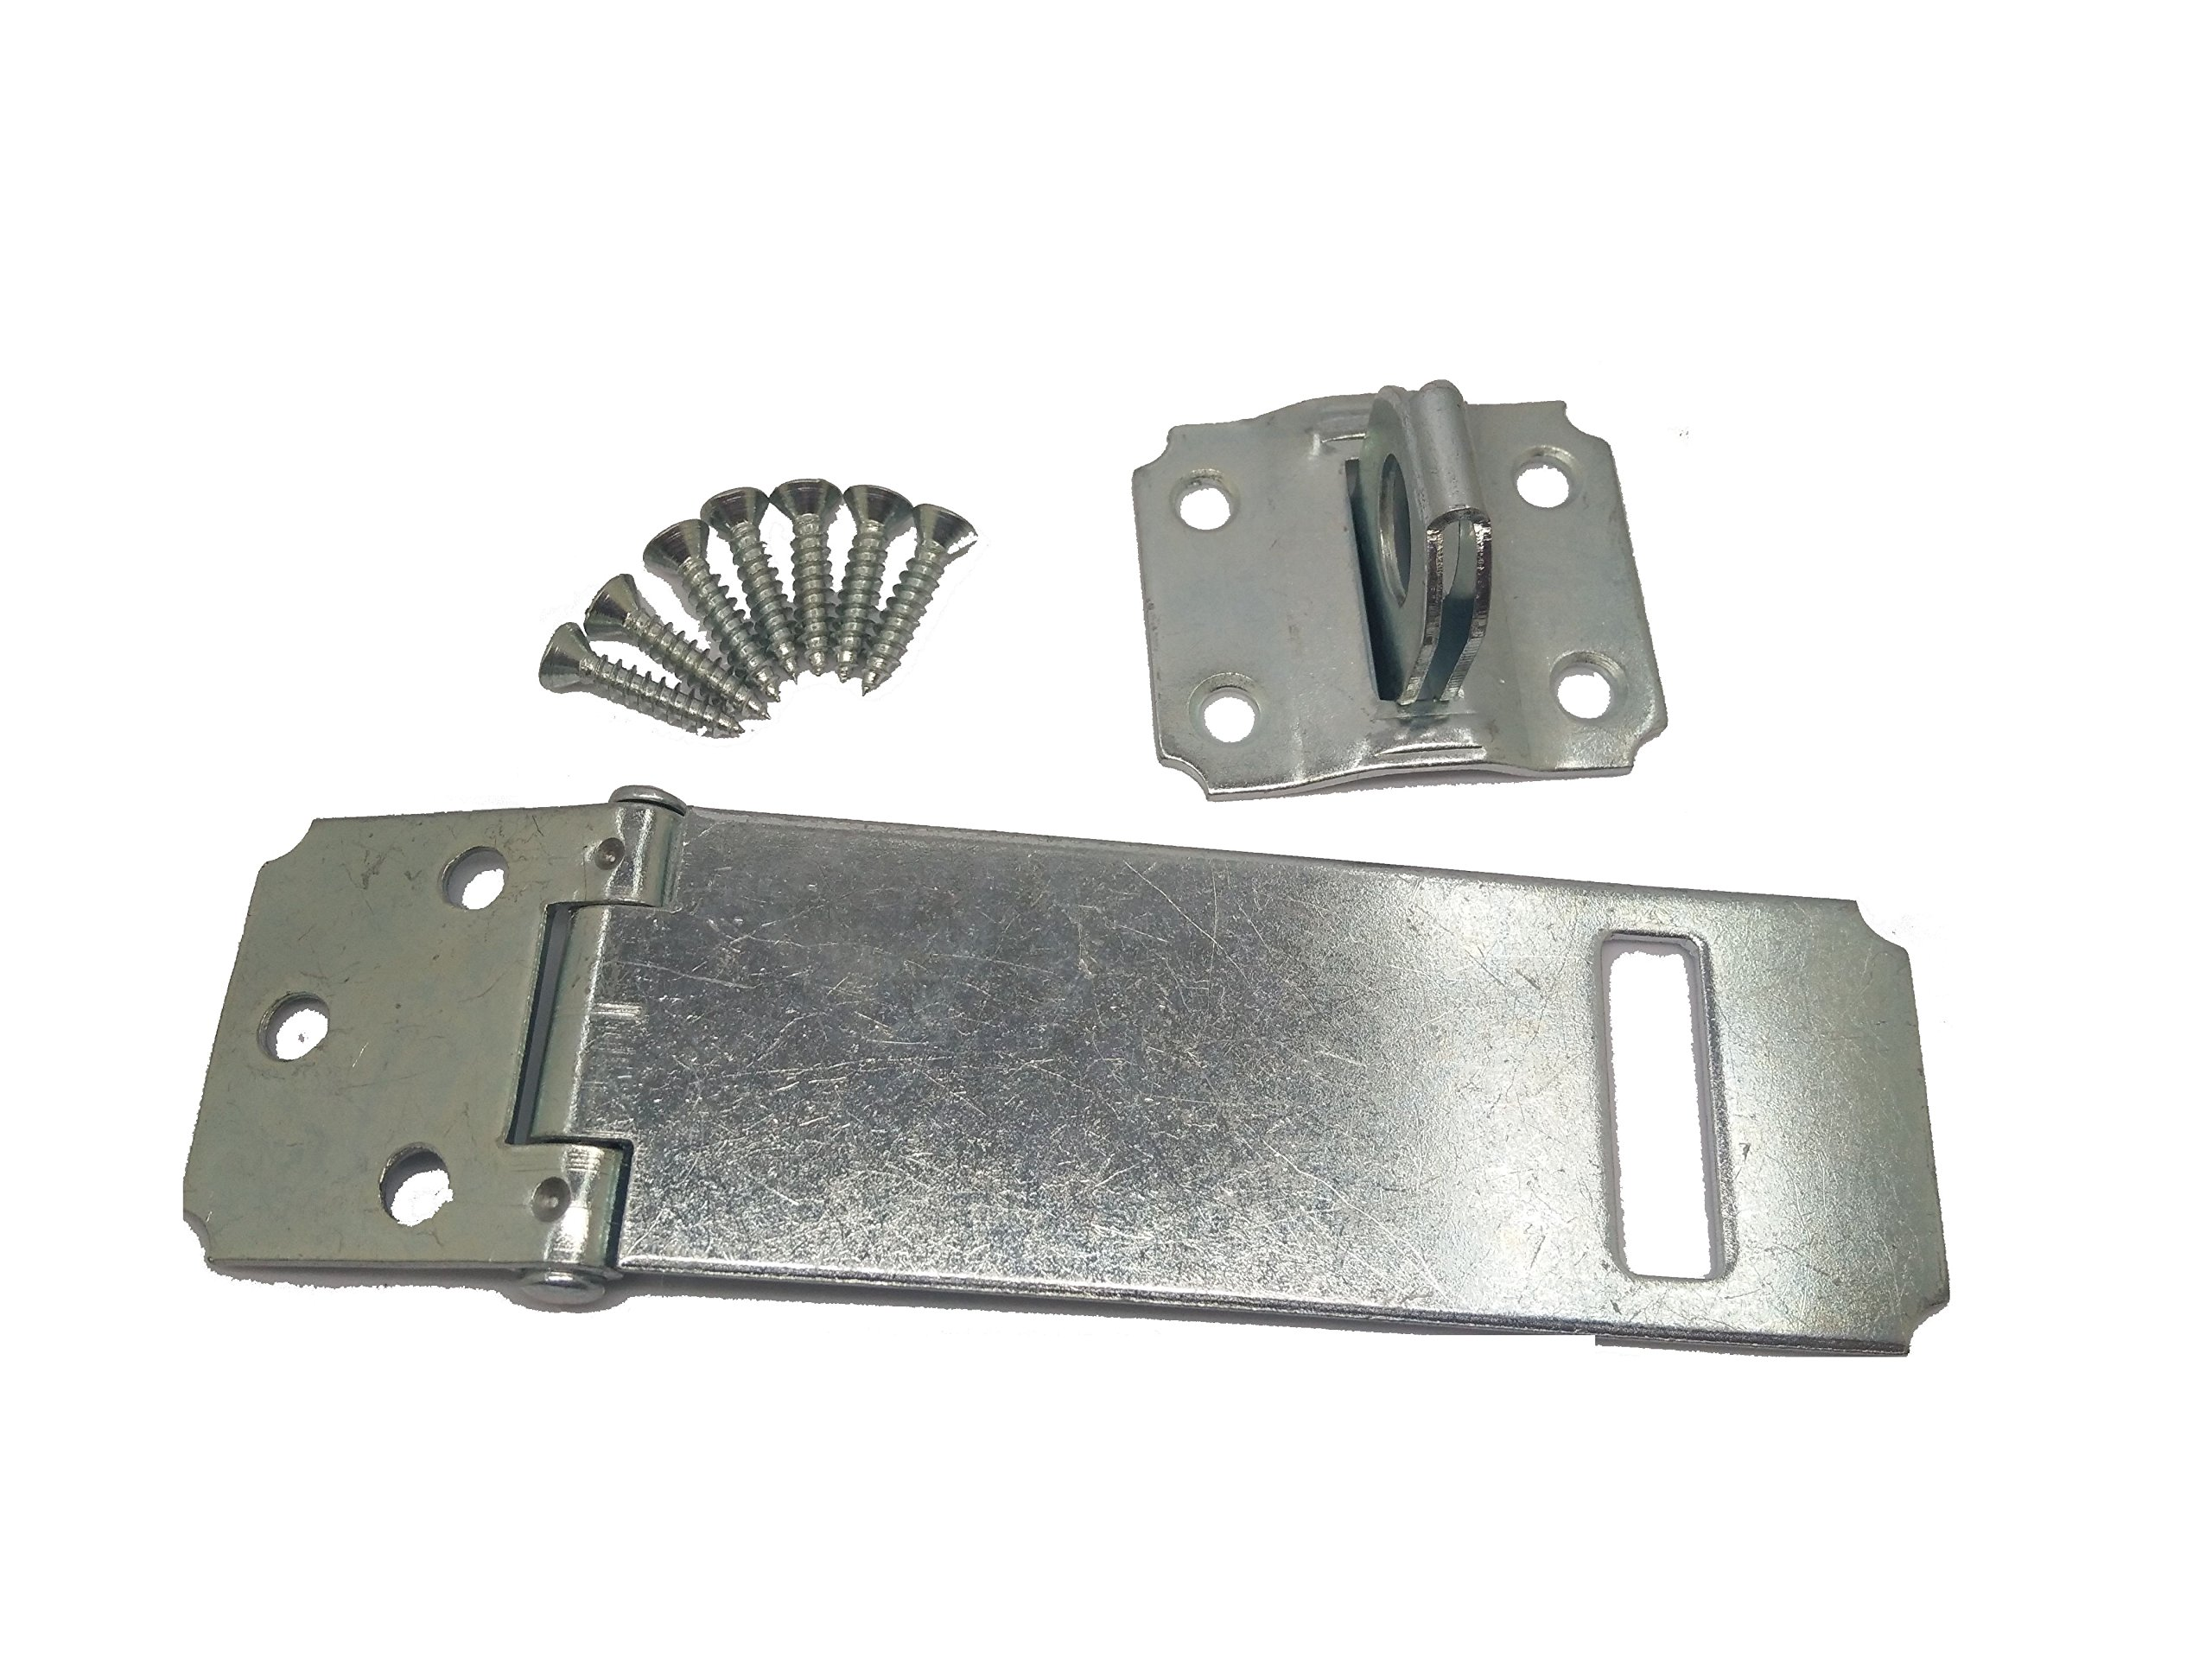 Specialty Hardware Safety Hasp 4-1/2 inch Zinc Plated Pack of 30